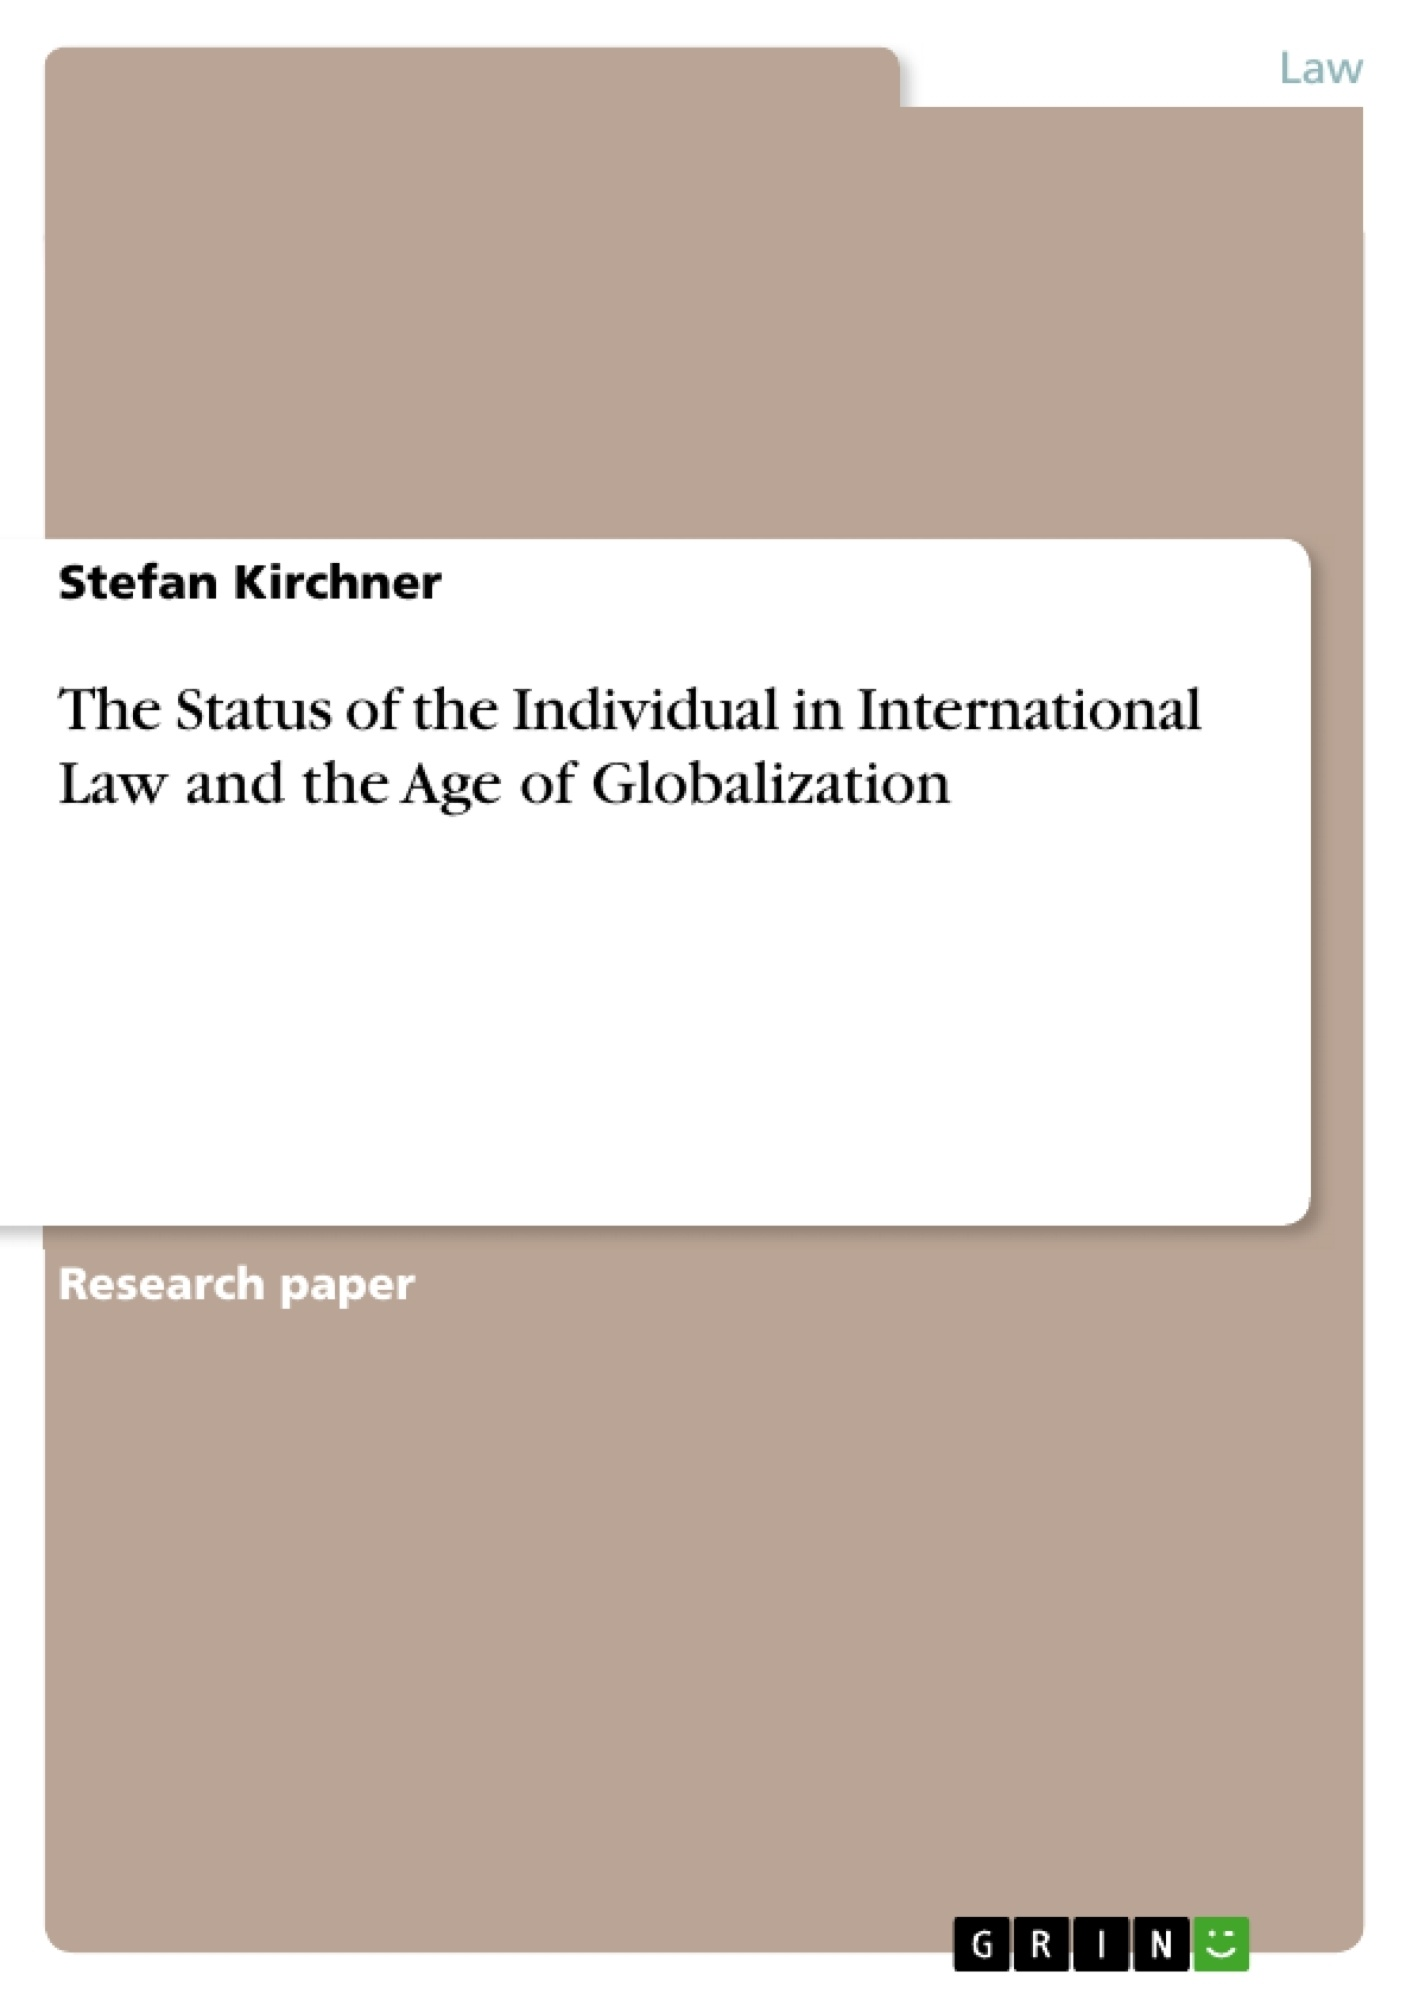 Title: The Status of the Individual in International Law and the Age of Globalization